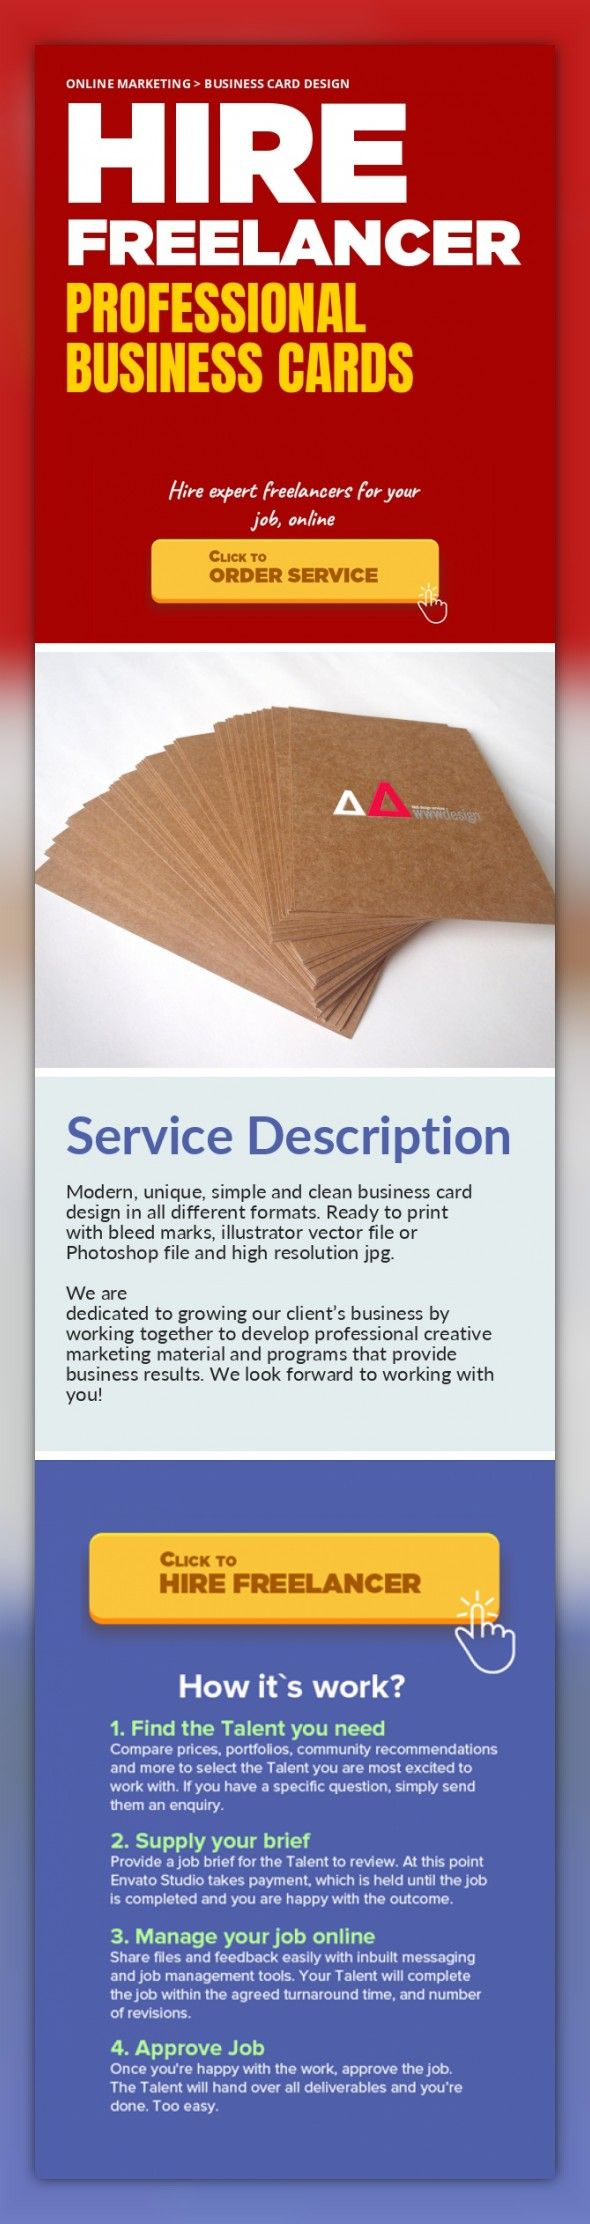 Professional Business Cards Online Marketing, Business Card Design   Modern, unique, simple and clean business card design in all different formats. Ready to print with bleed marks, illustrator vector file or Photoshop file and high resolution jpg.    We are dedicated to growing our client's business by working together to develop professional creative marketing material and programs that provid...